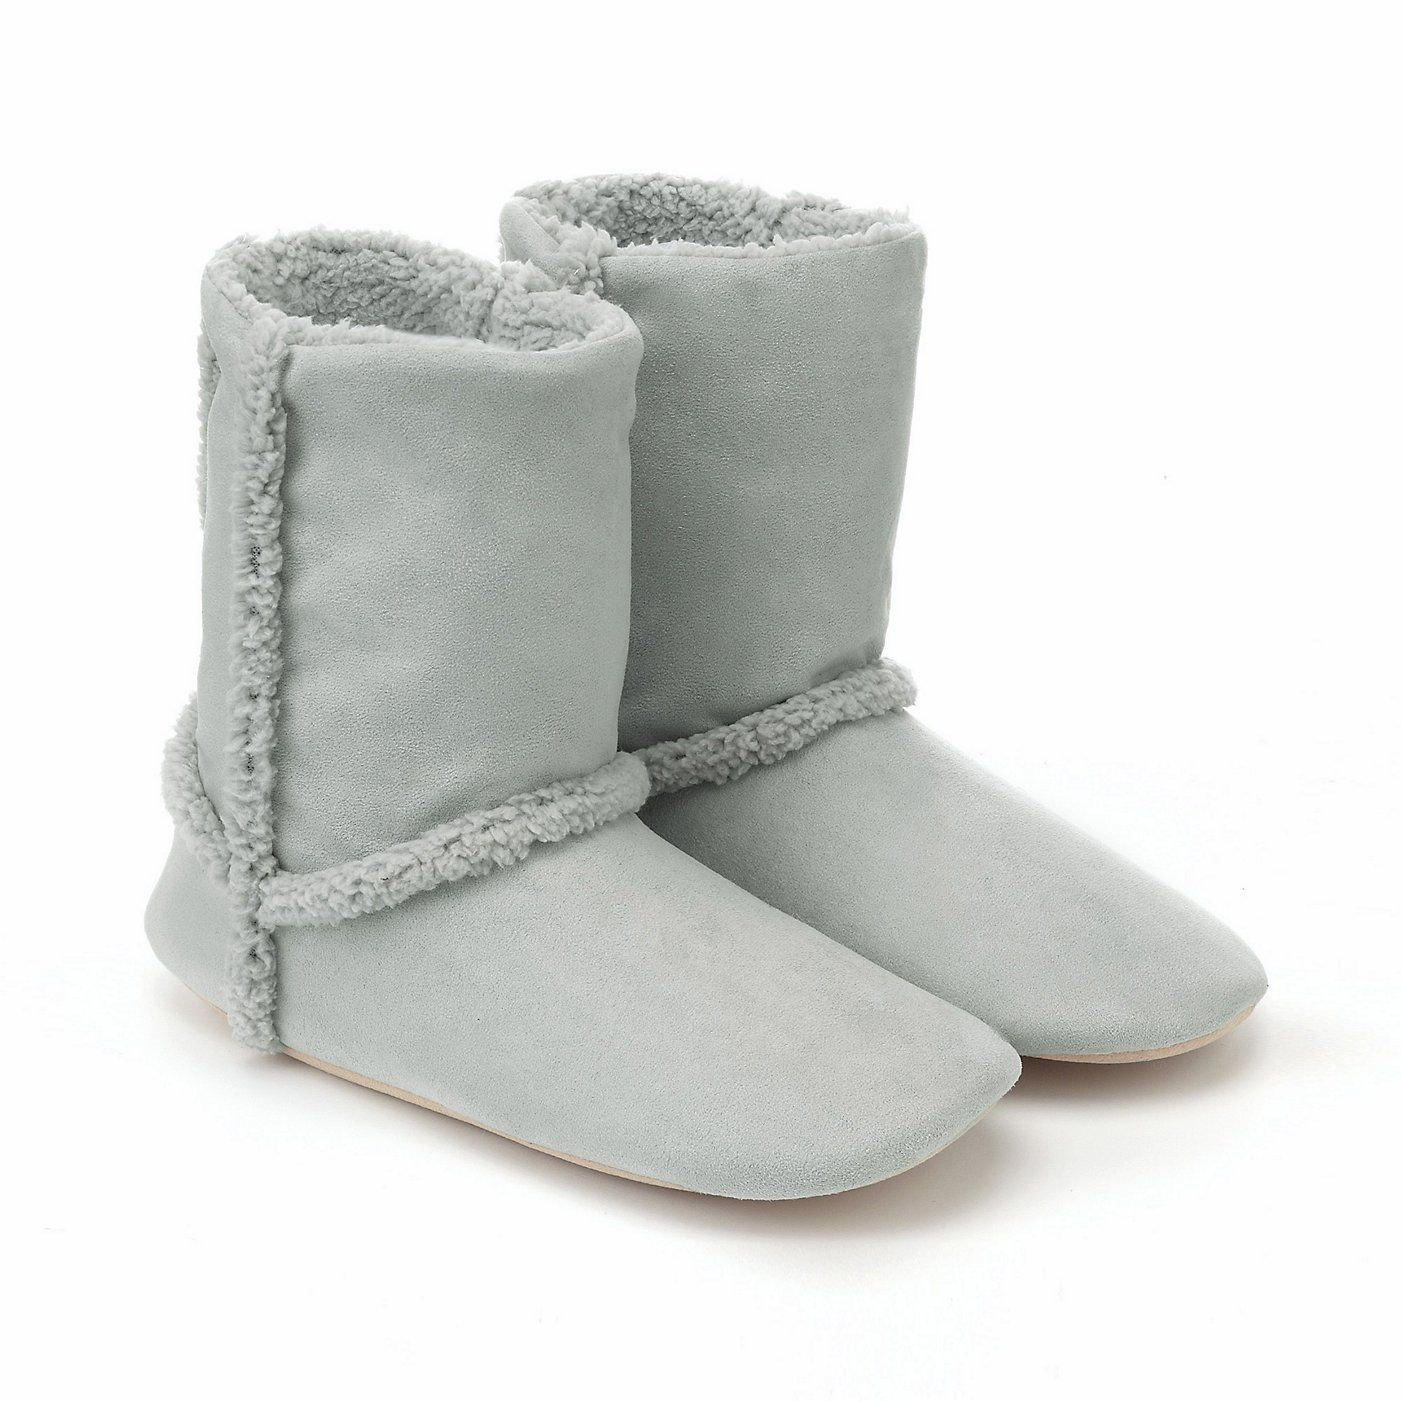 Spring Inuit Slippers - Pale Grey | The White Company